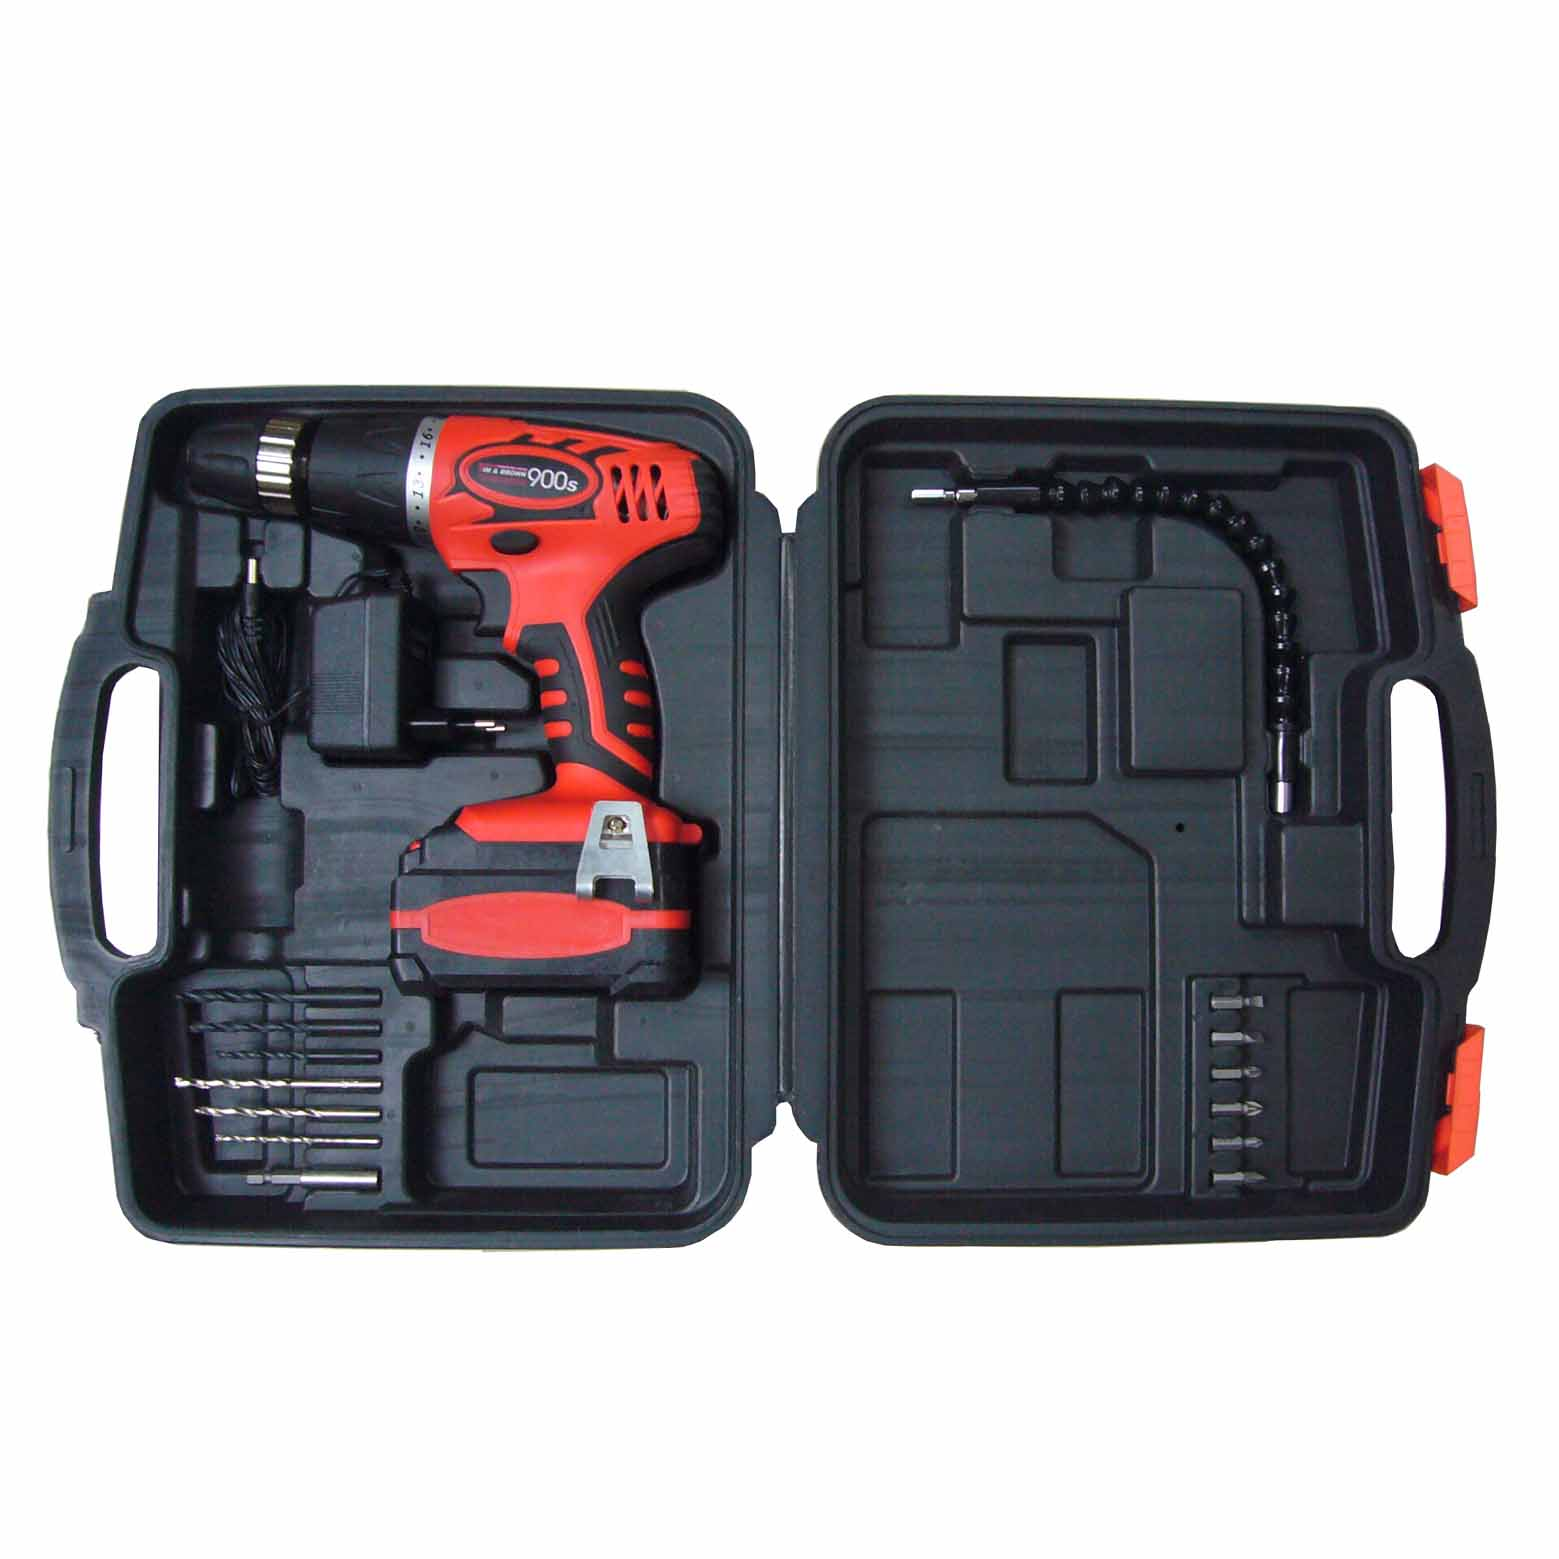 SND240C cordless drill  with impact